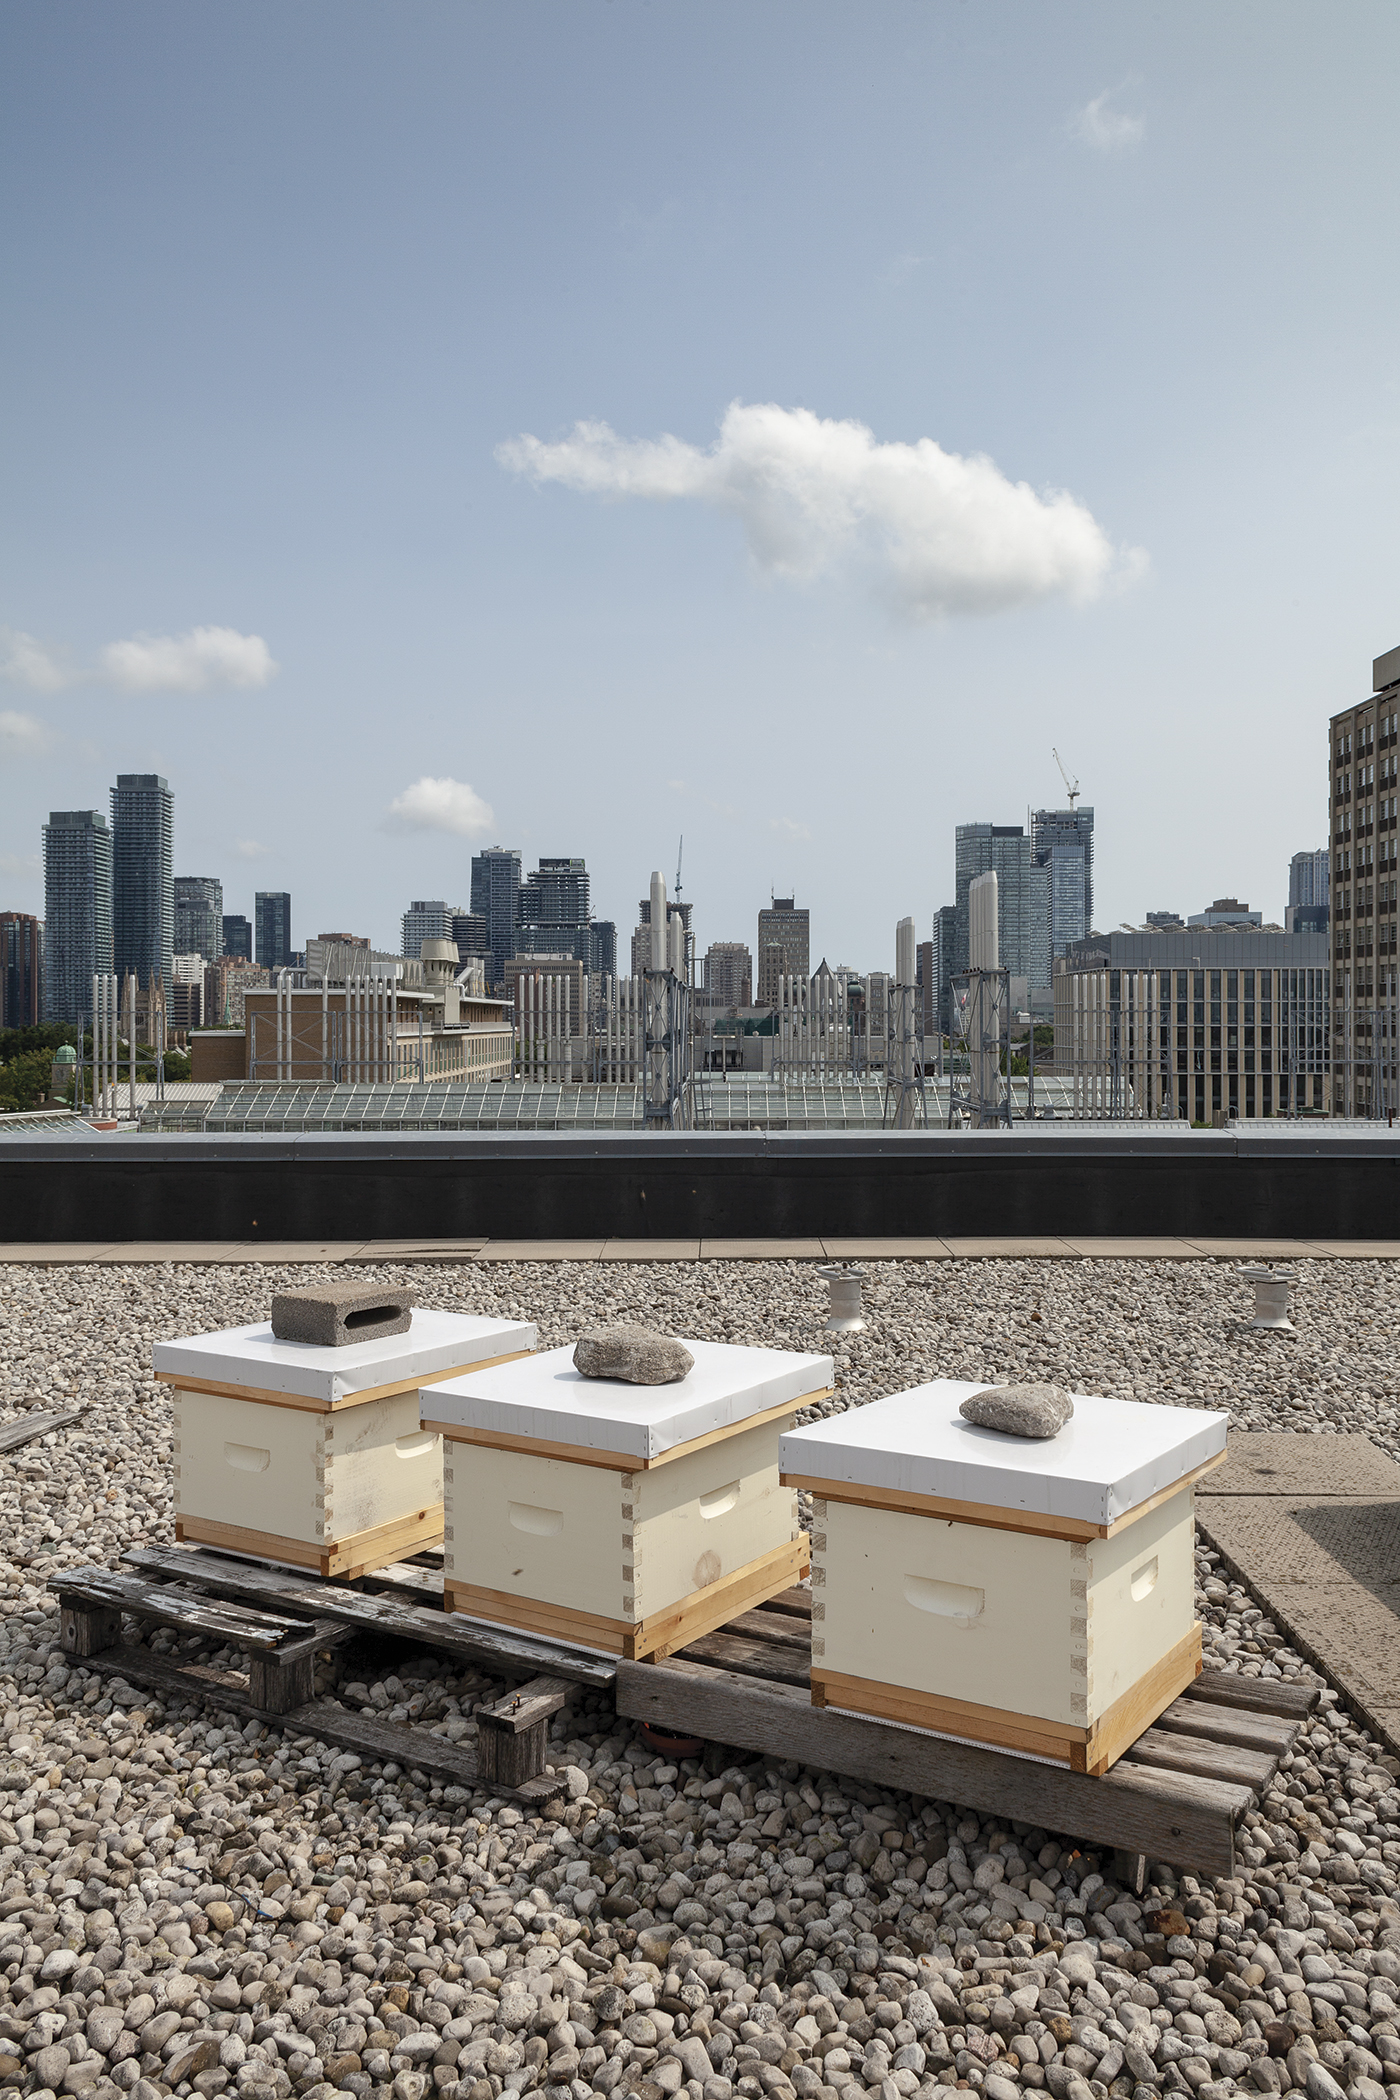 Rooftop Apiary with three hives on rooftop with city skyline in the background.